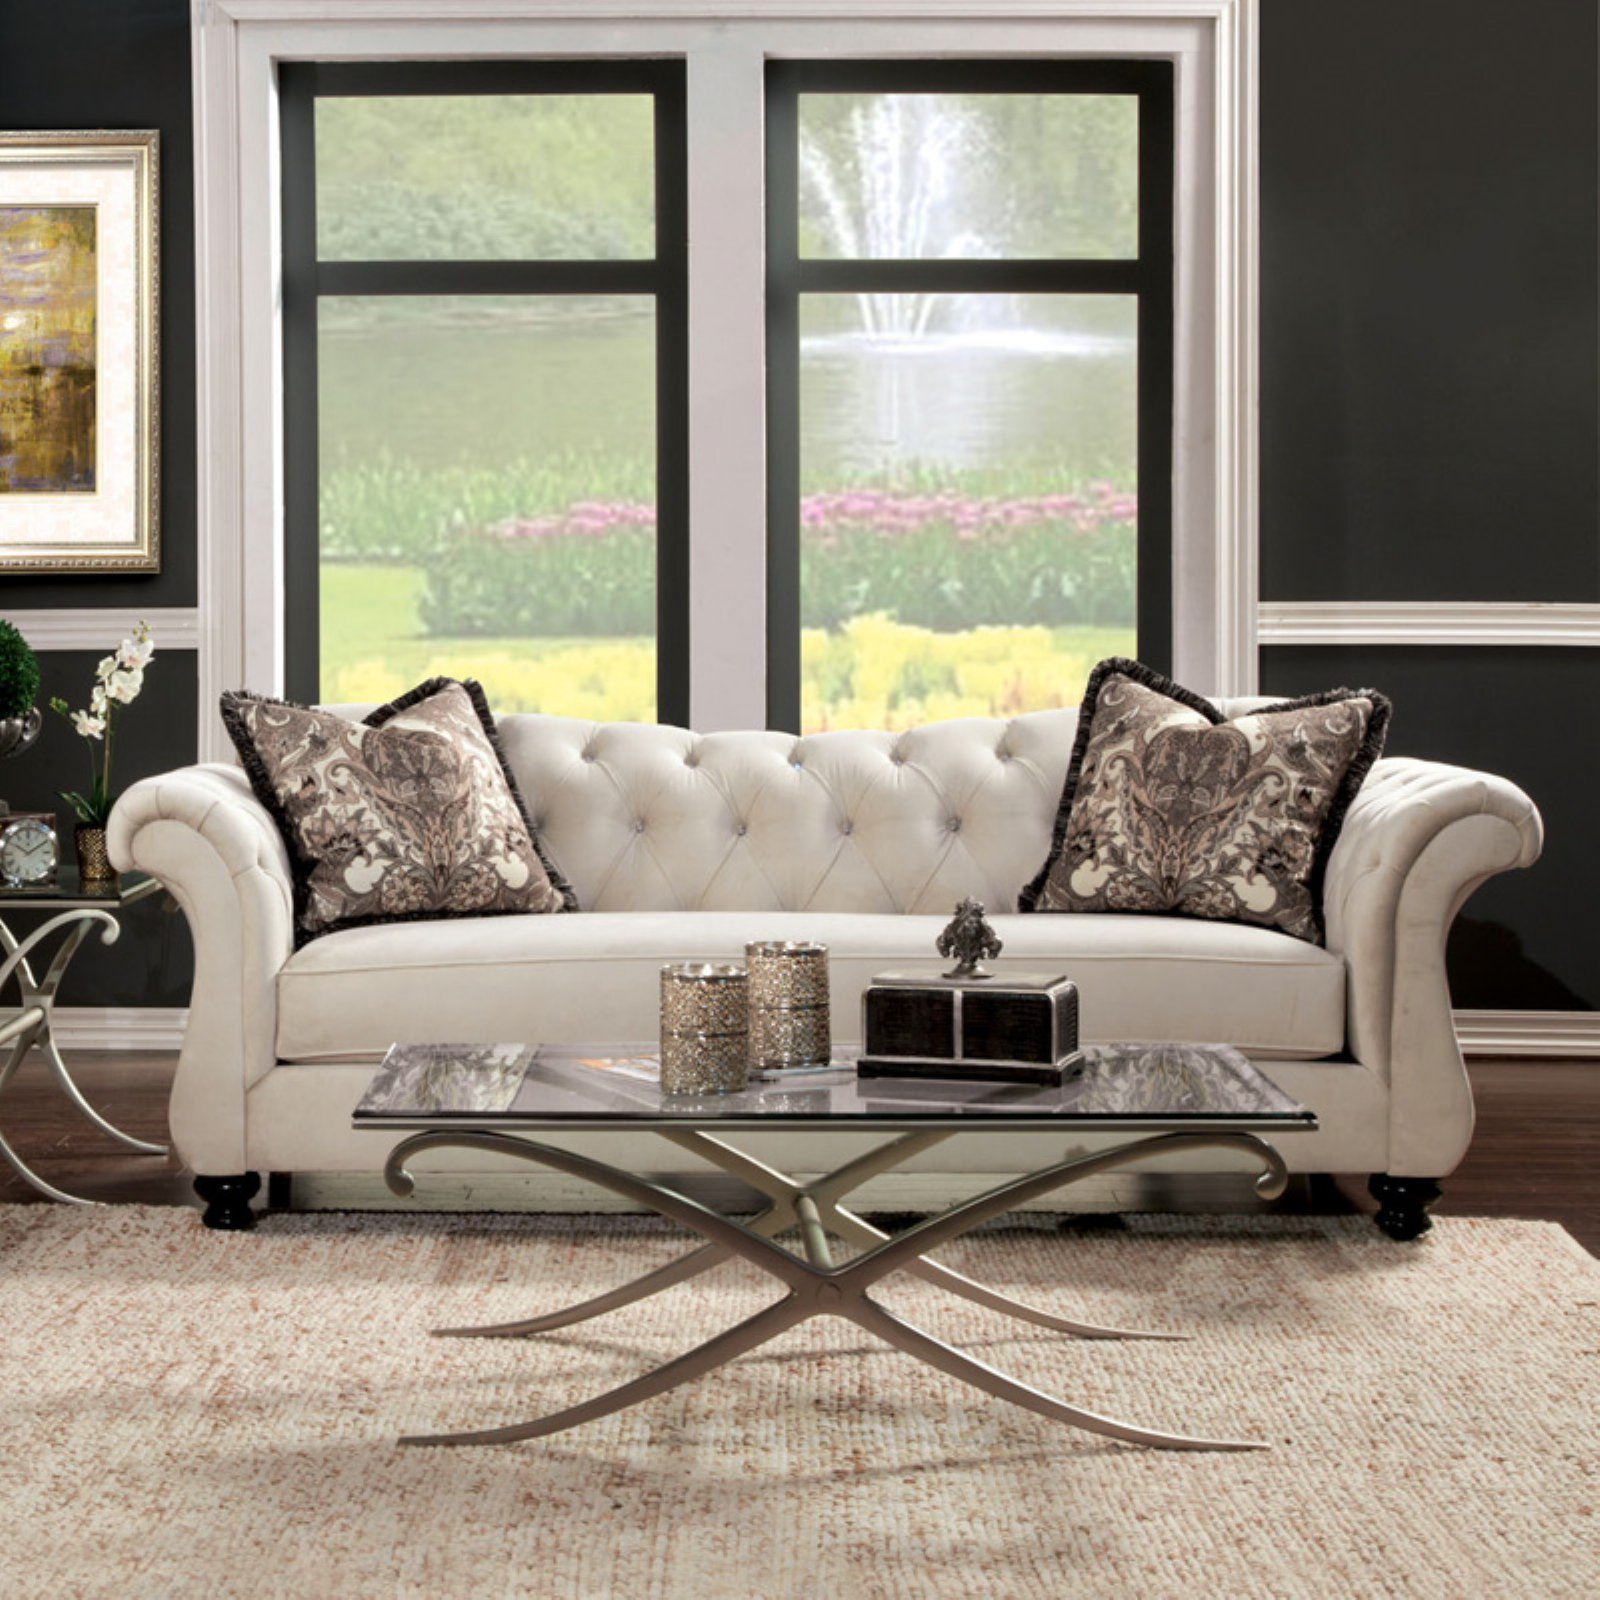 Furniture of America Wellington Premium Fabric Sofa - Cream White